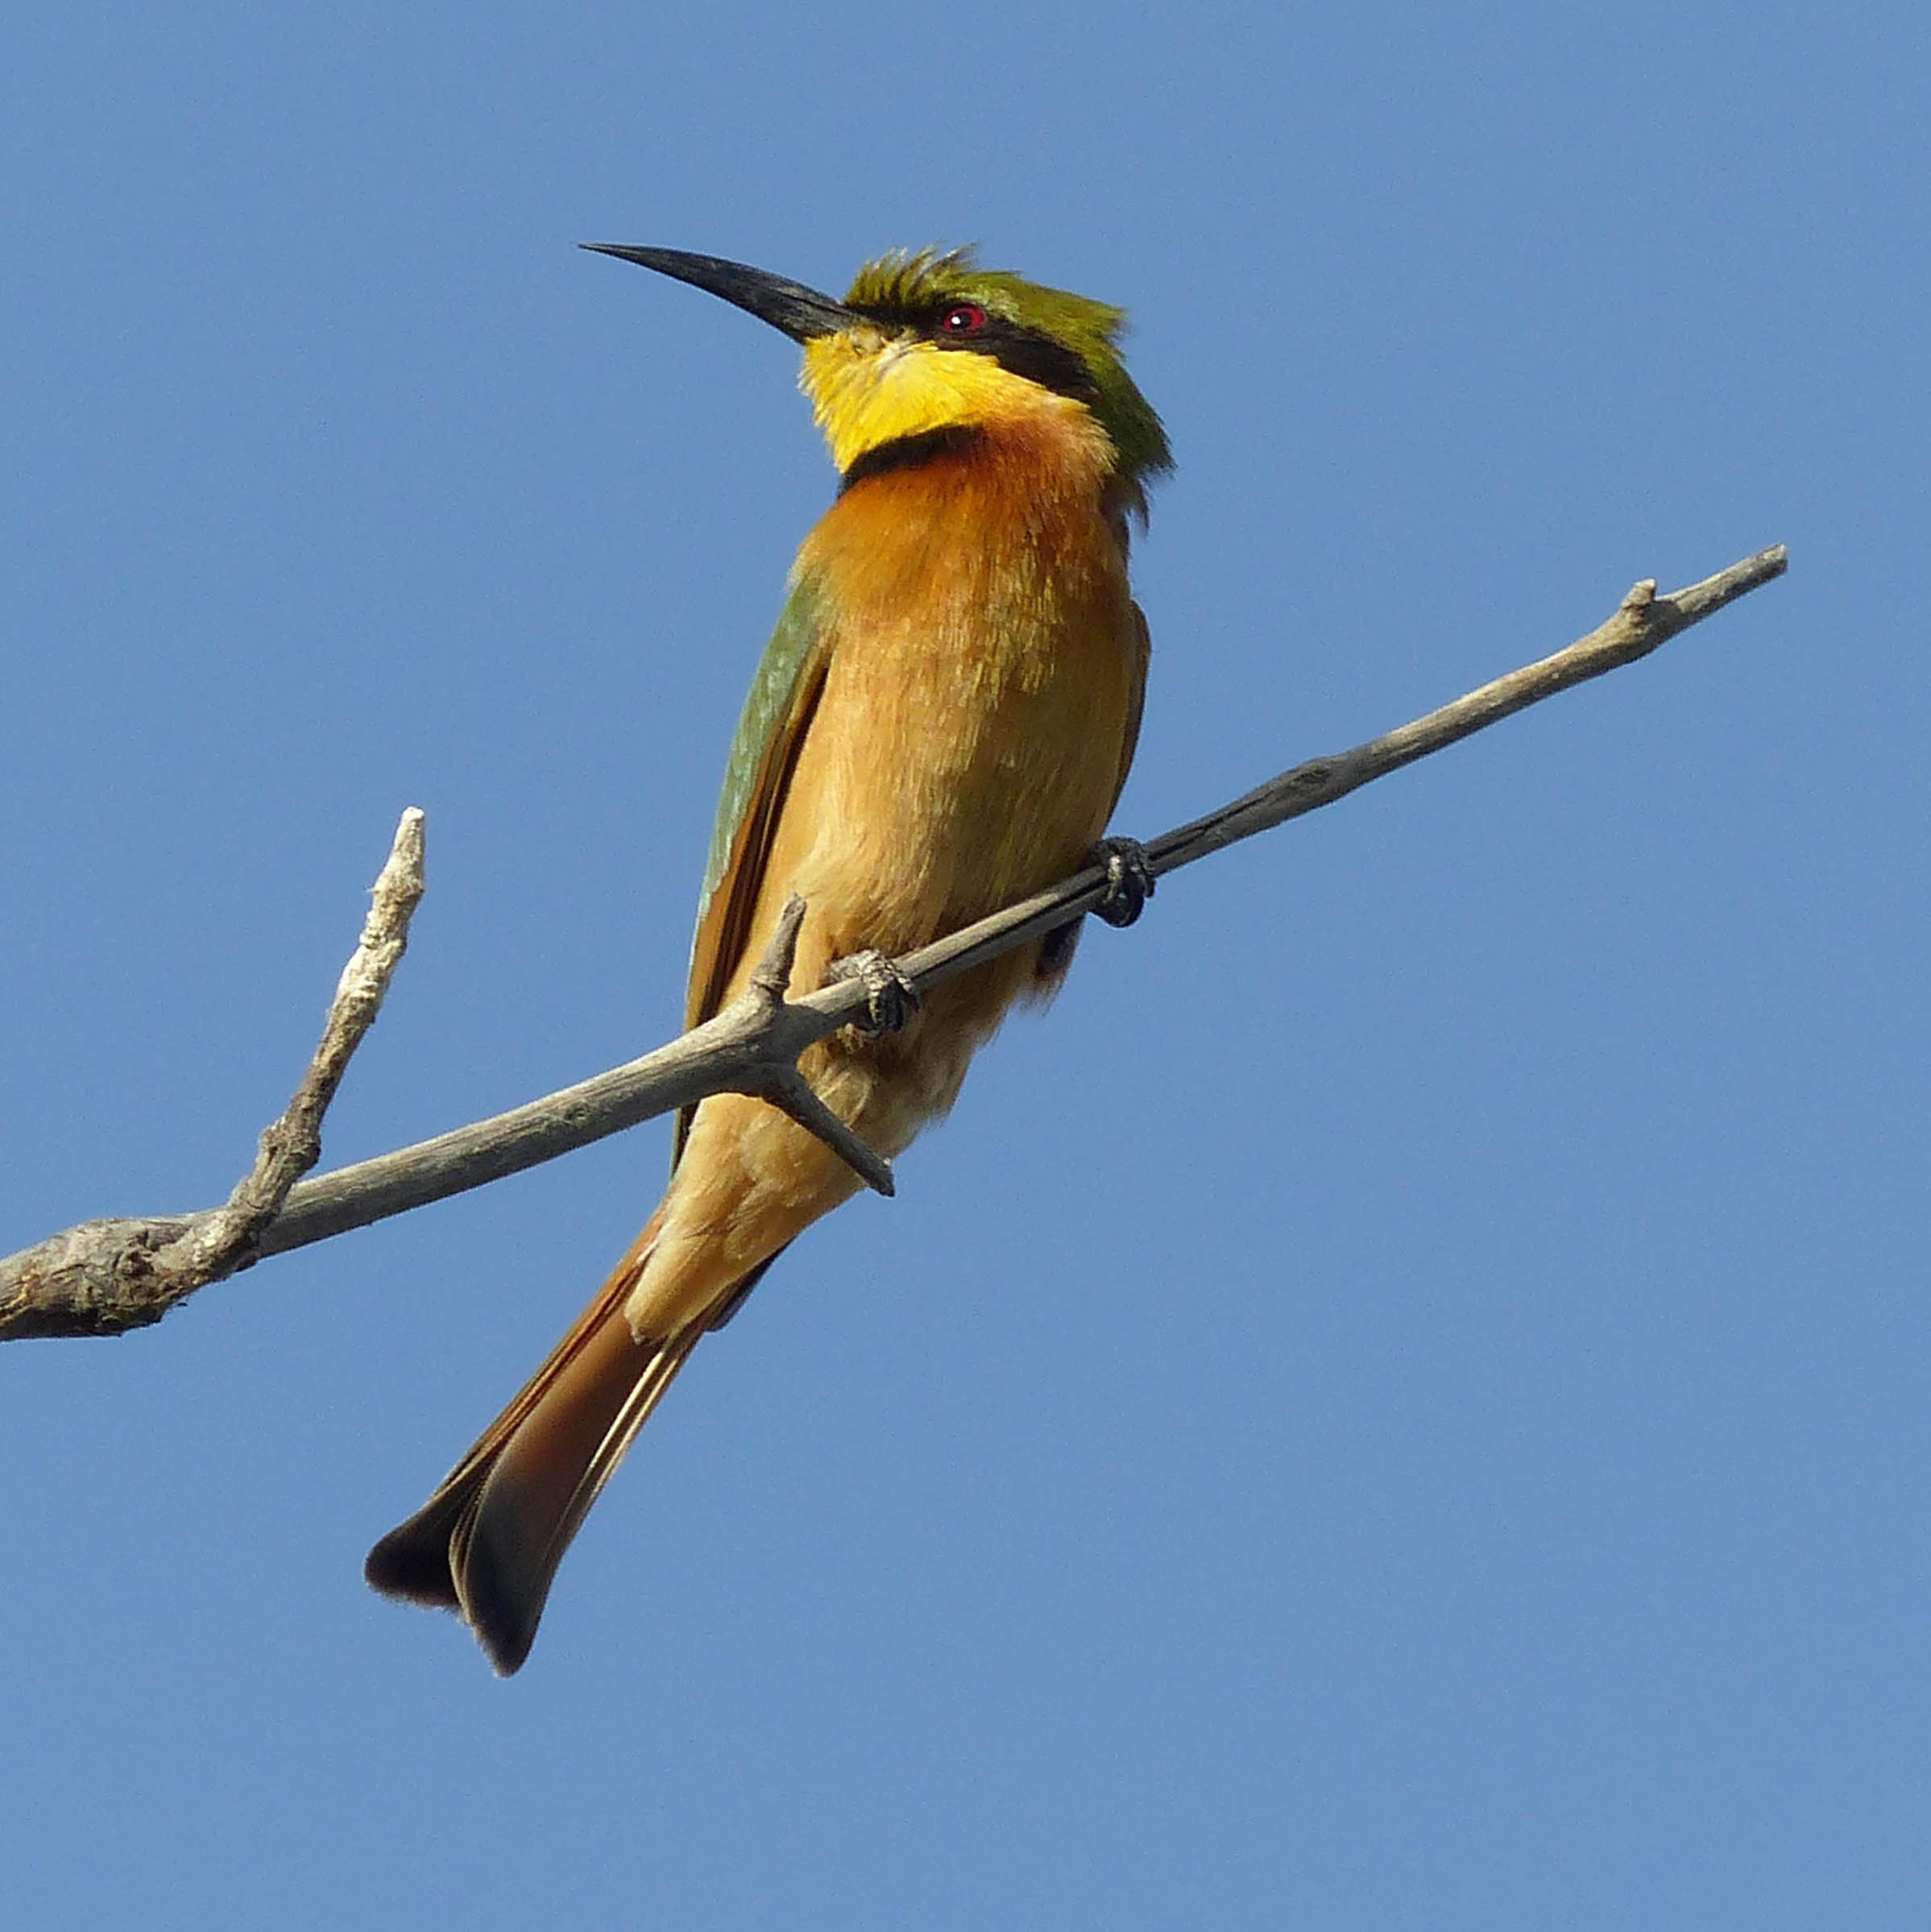 Bright yellow and green bird with a long tail